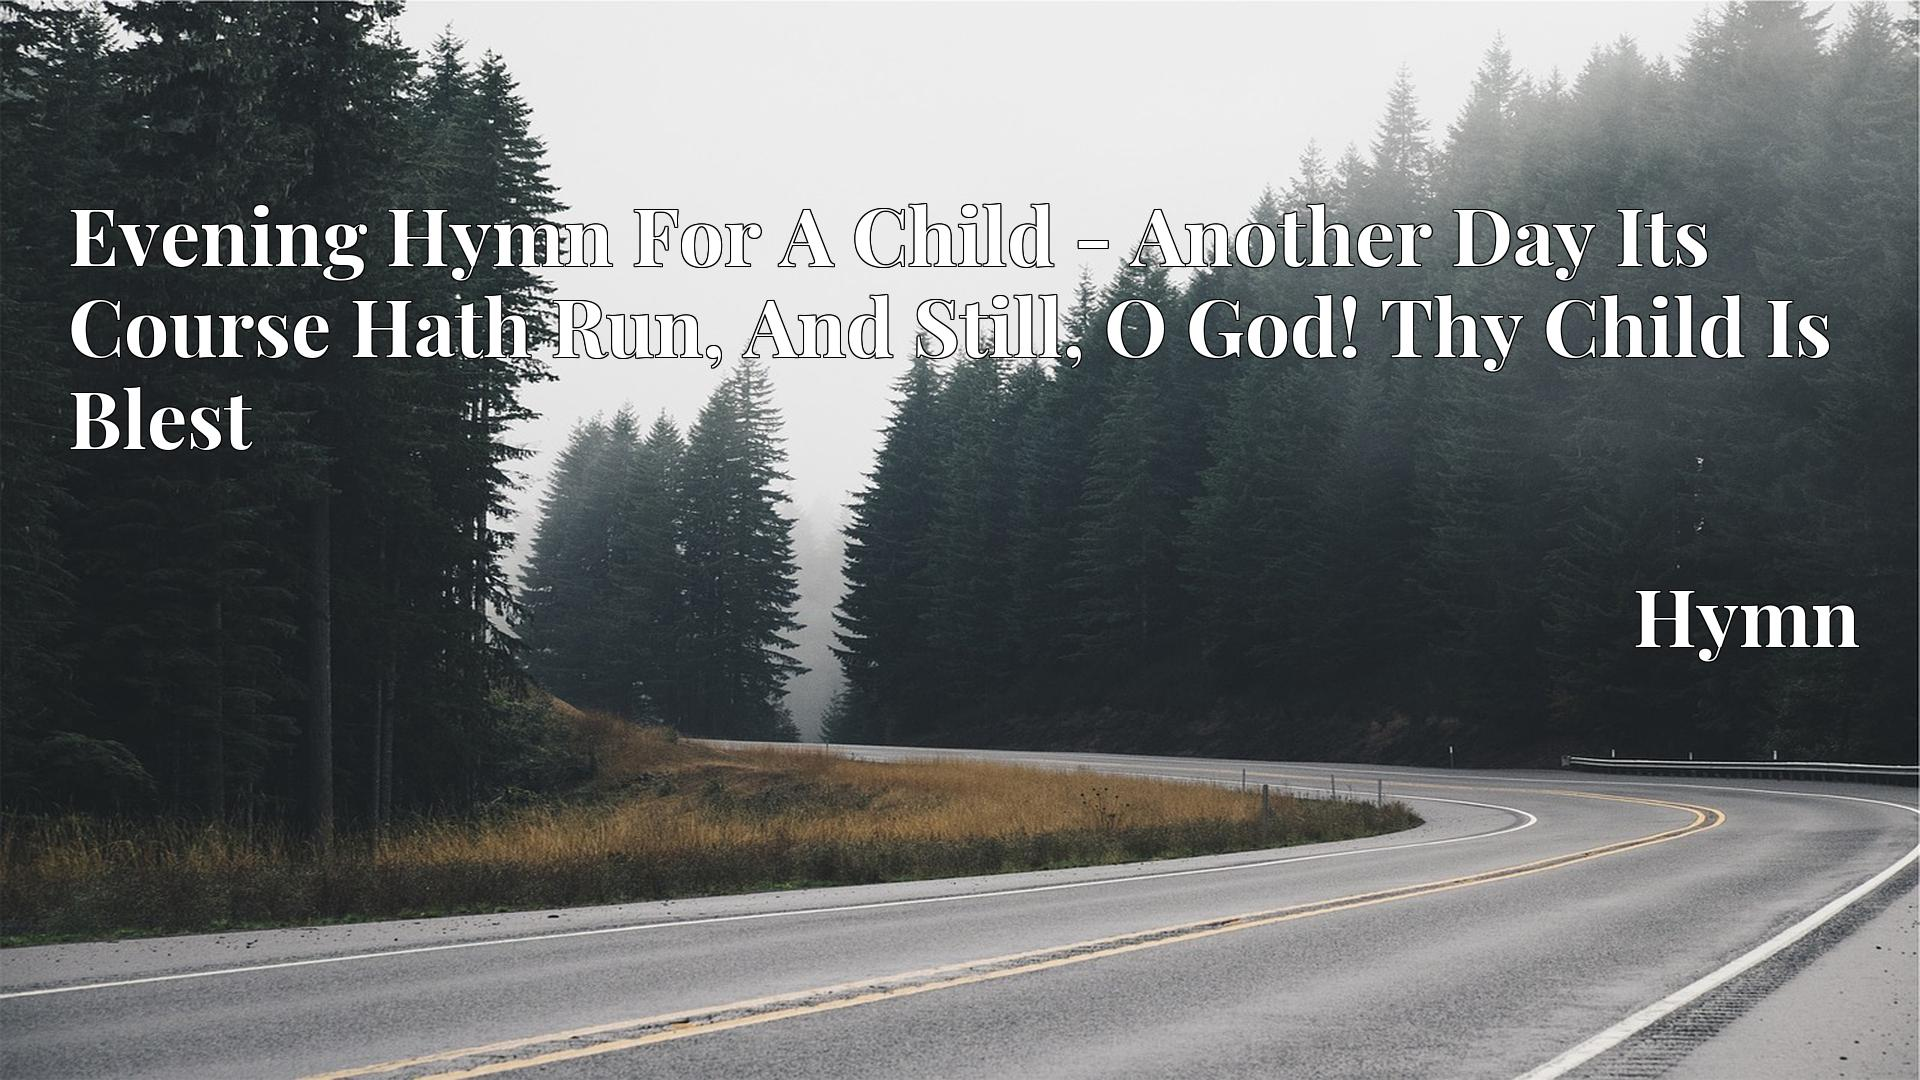 Evening Hymn For A Child - Another Day Its Course Hath Run, And Still, O God! Thy Child Is Blest - Hymn